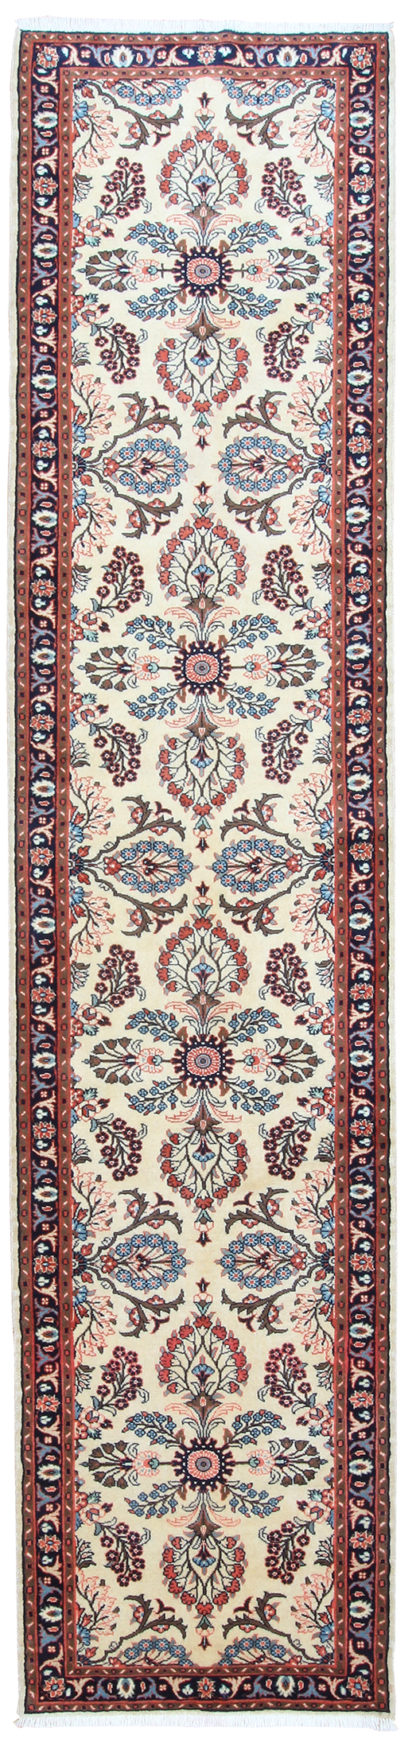 Shirvan Design Runner 3x12 Beige Wool Area Rug